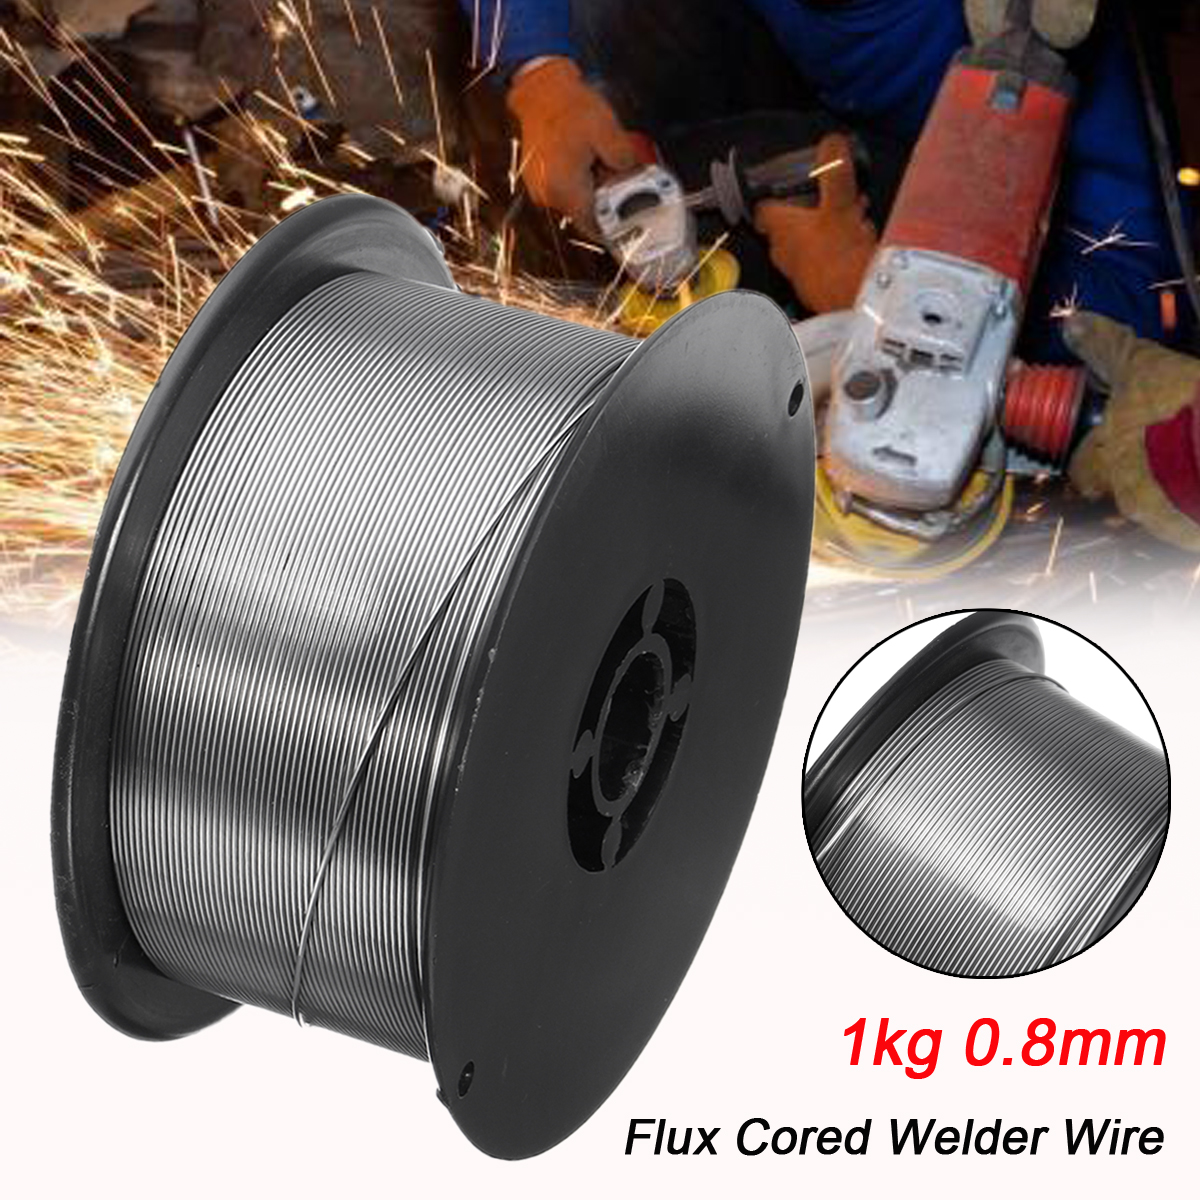 Flux Core Welding Wire >> Us 17 81 9 Off Gasless Mig Welding Wire E71t Gs 1kg 0 8mm Flux Core Welder Wire Steel Flux Cored Welding Wire Without Gas In Welding Wires From